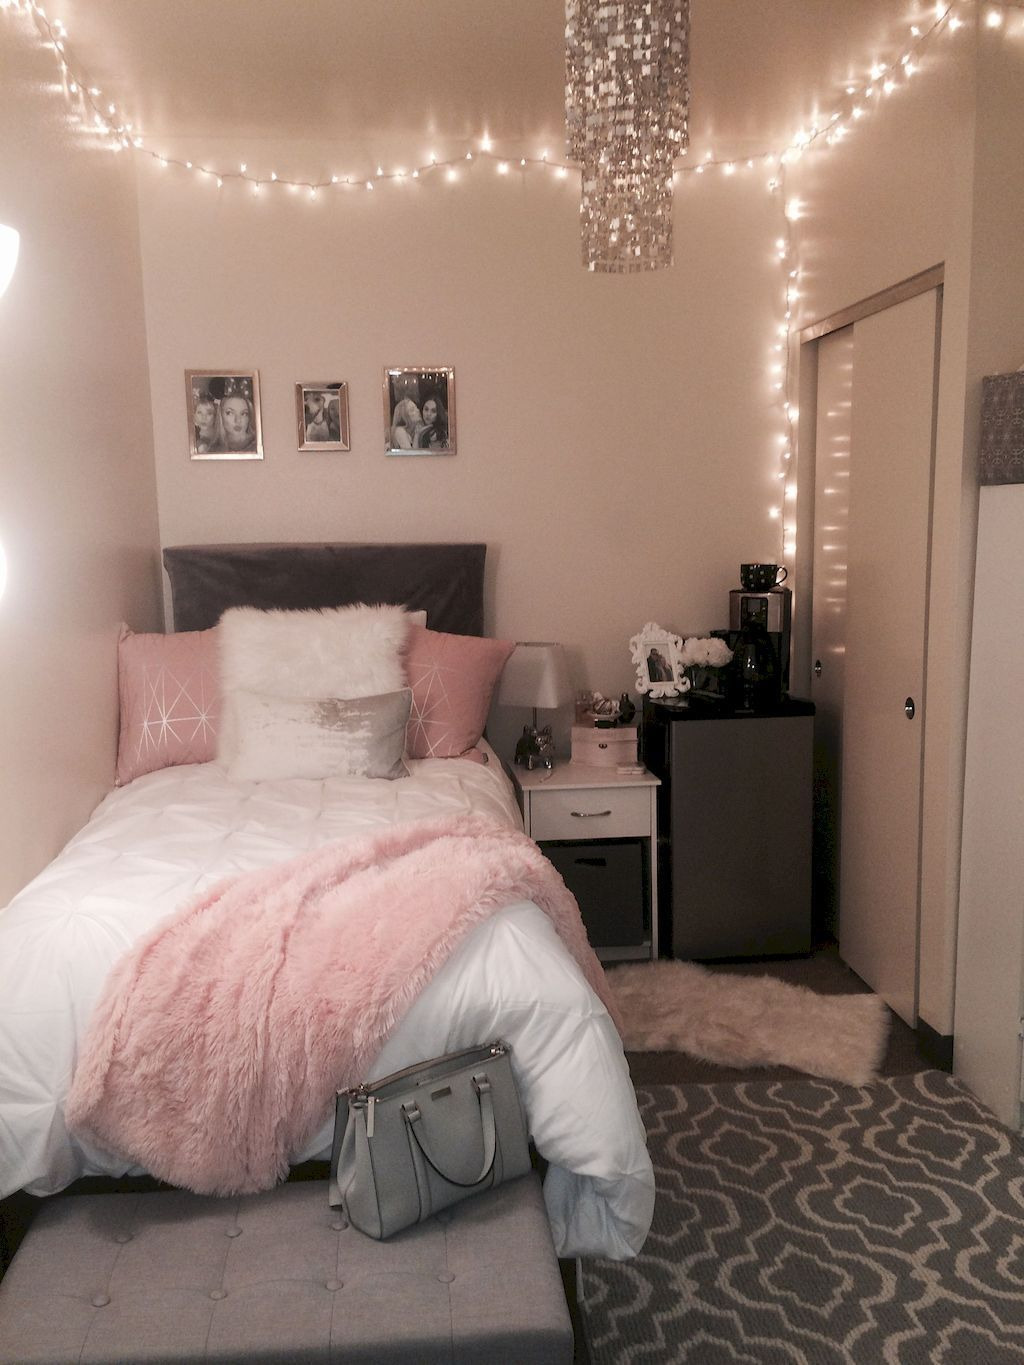 Bedroom Inspiration for Small Rooms Unique 30 Minimalist Diy Room Decor Ideas Suitable for Small Room